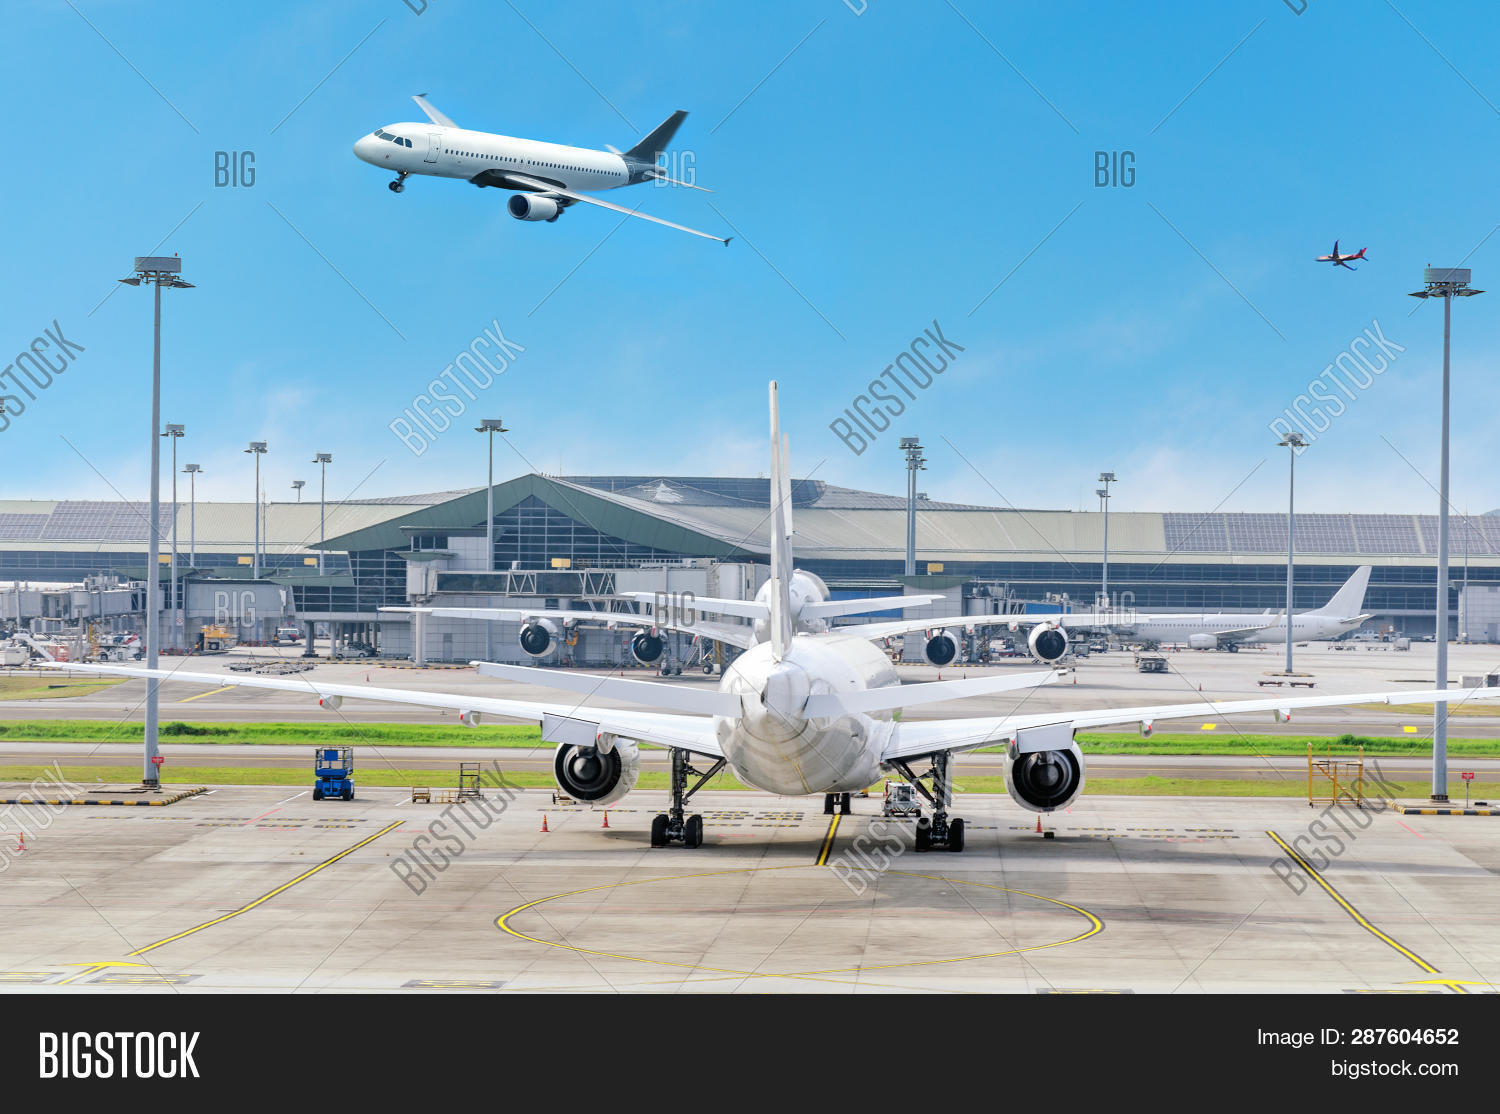 aerospace,air,airbus,aircraft,airfield,airplane,airport,arrival,arrive,aviation,blue,building,business,cargo,civil,clear,commercial,day,descending,down,dynamic,flight,fly,gate,gear,horizon,international,jet,land,malaysian,no,parking,people,plane,runway,sky,speed,sun,take,takeoff,terminal,tourism,transport,transportation,travel,trip,tropic,view,waiting,white